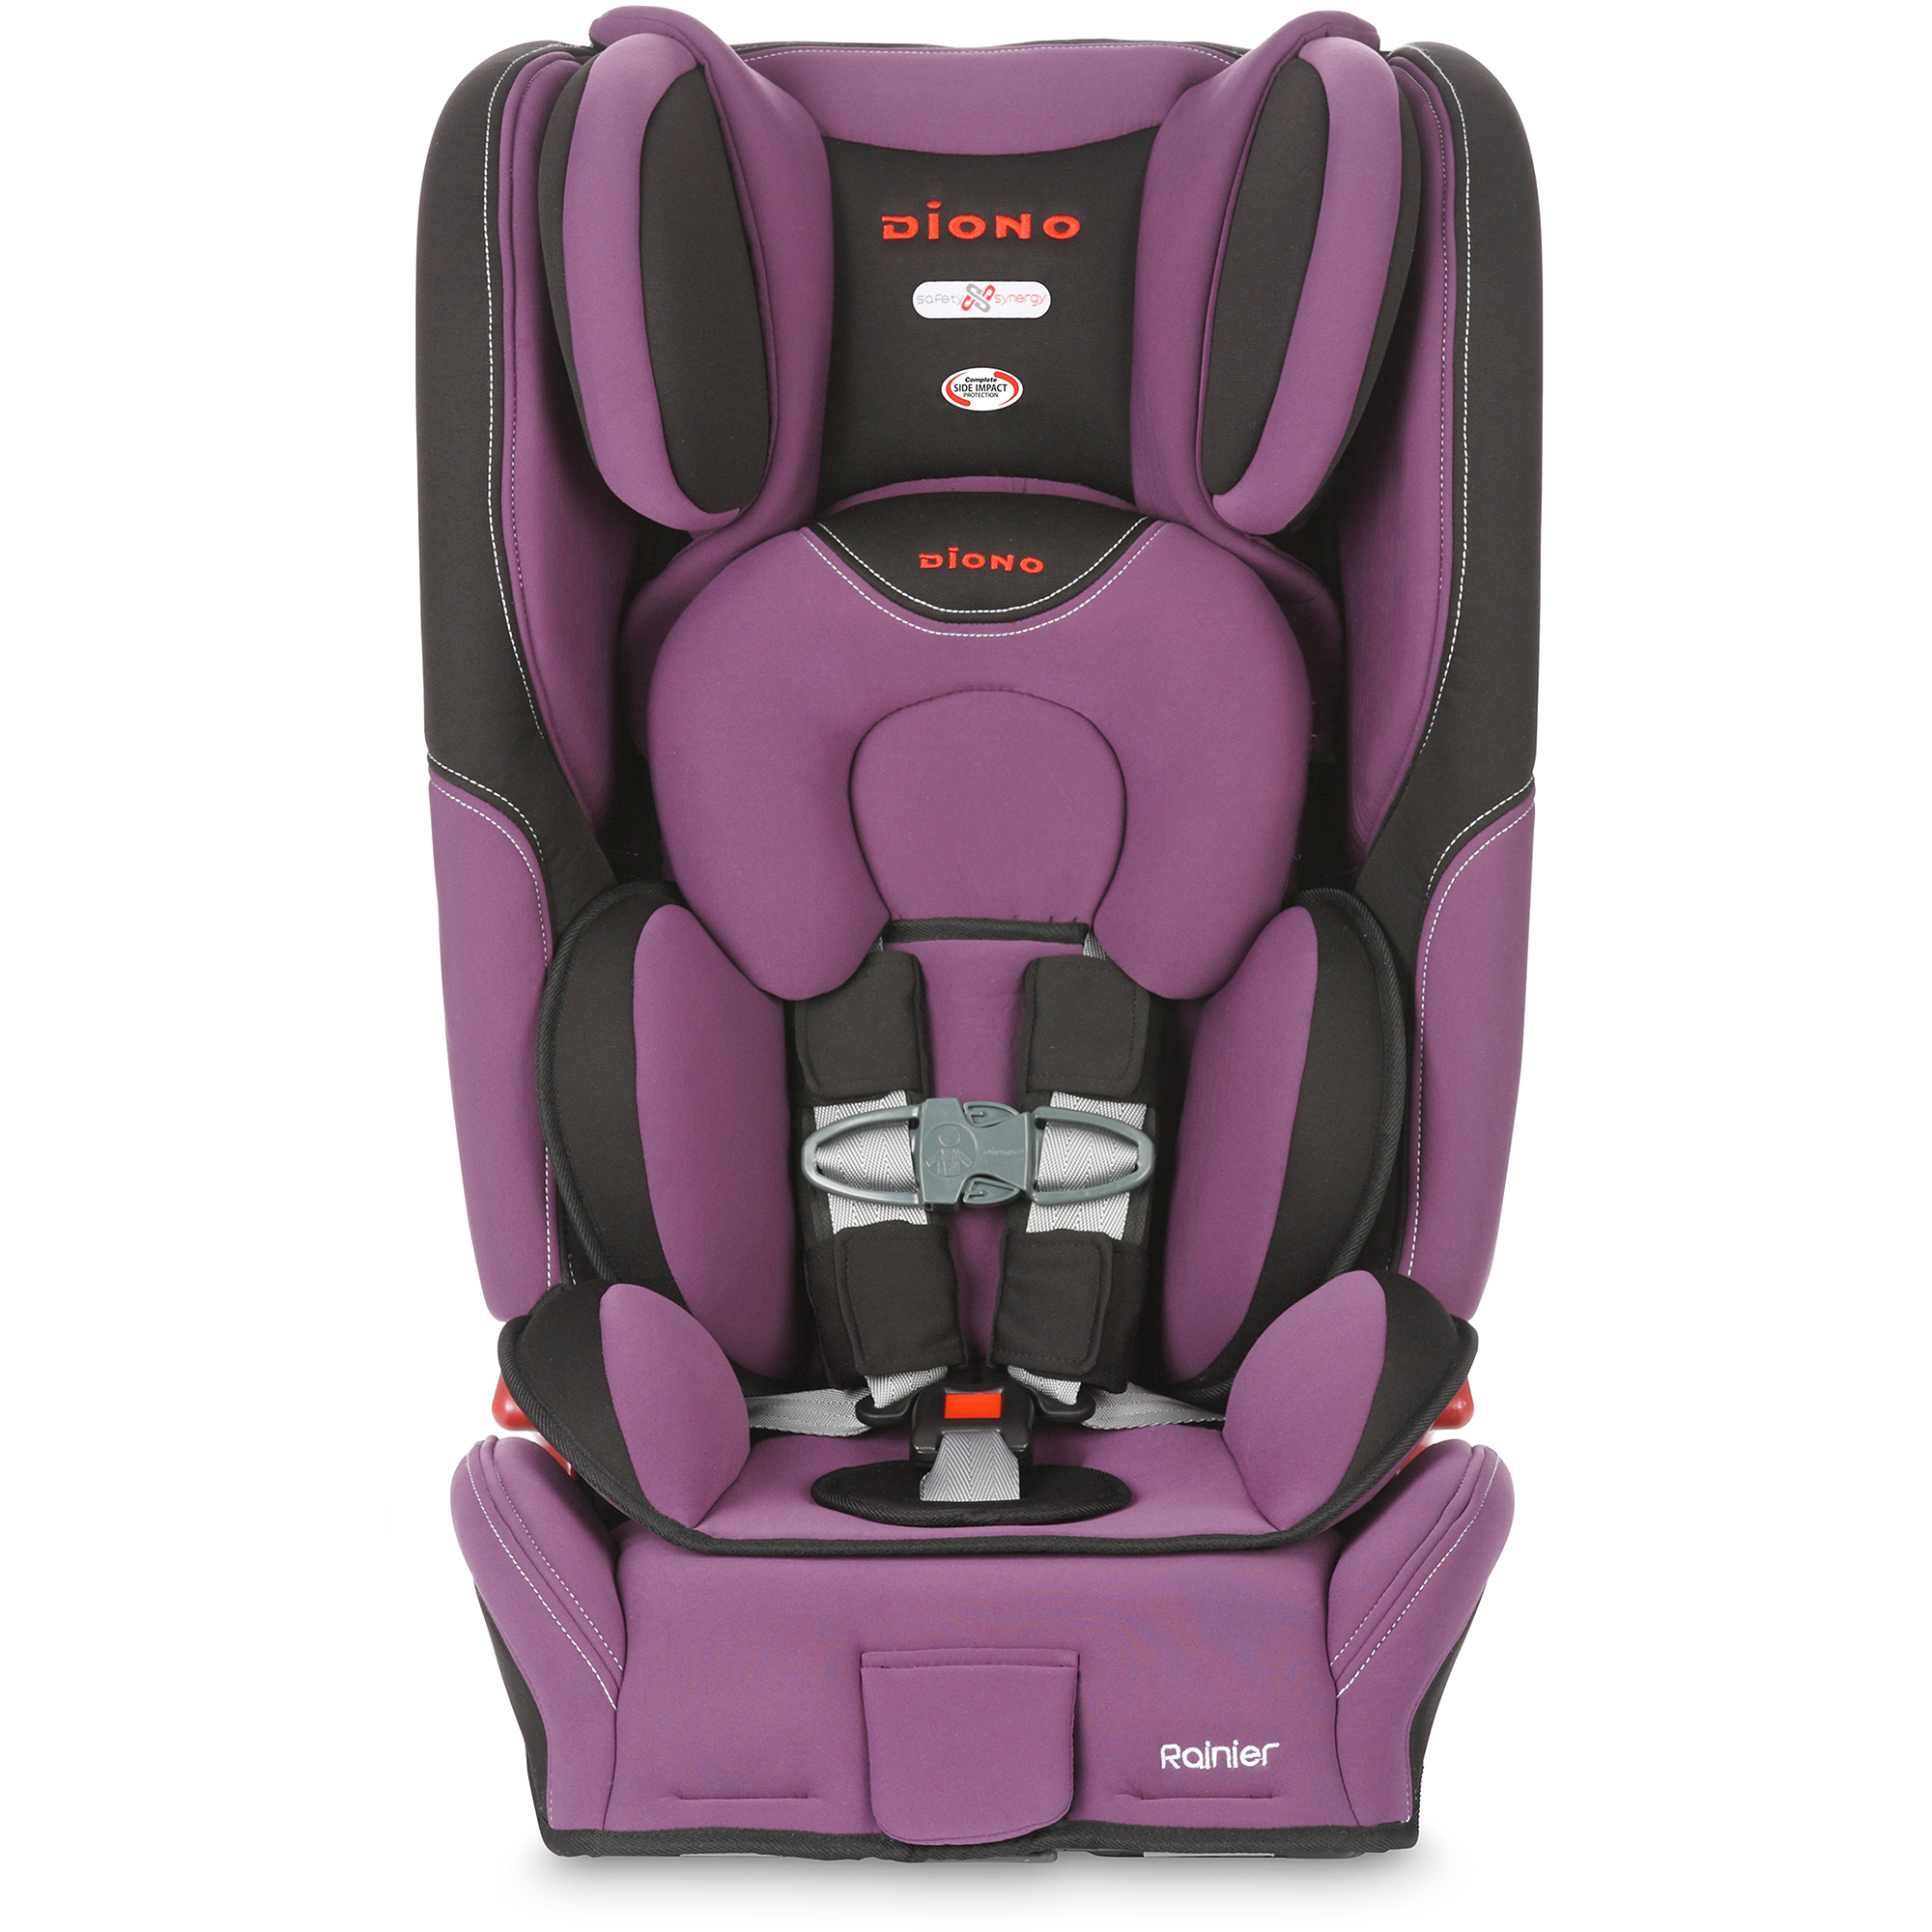 Diono Rainier Convertible Car Seat plus Booster with Adjustable Head Support